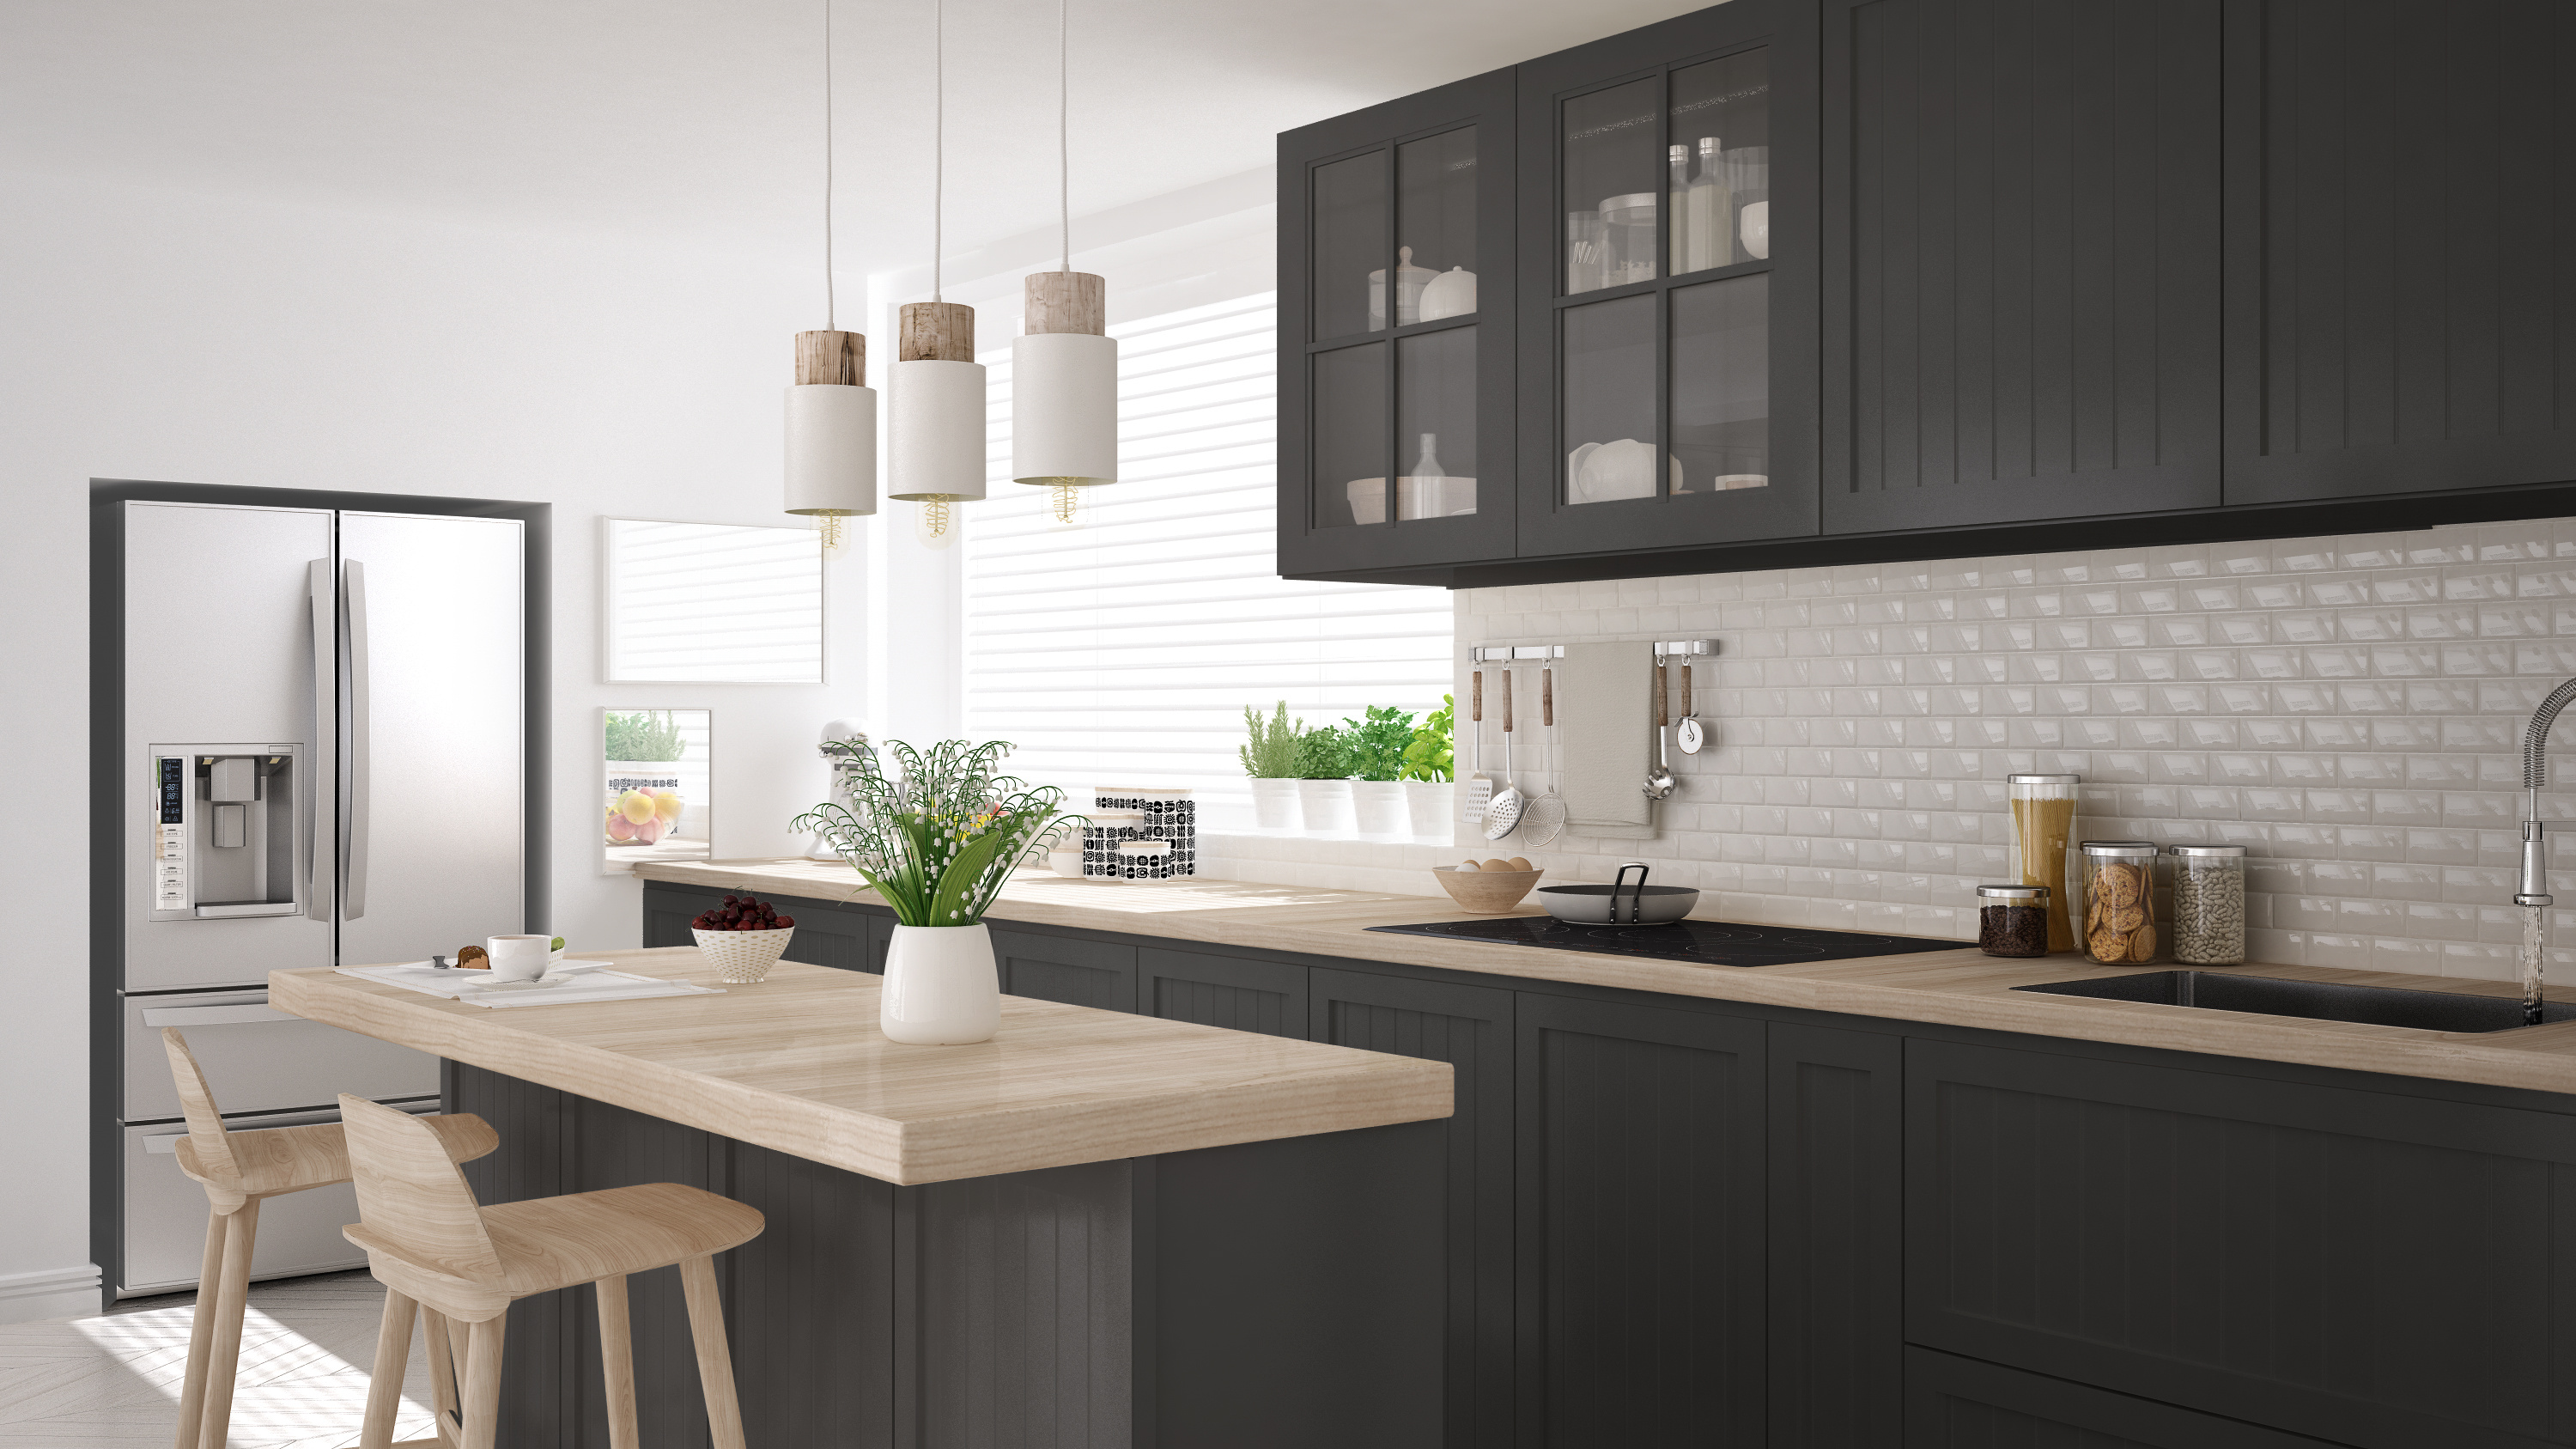 traditional shaker kitchen cabinets with wooden worktops